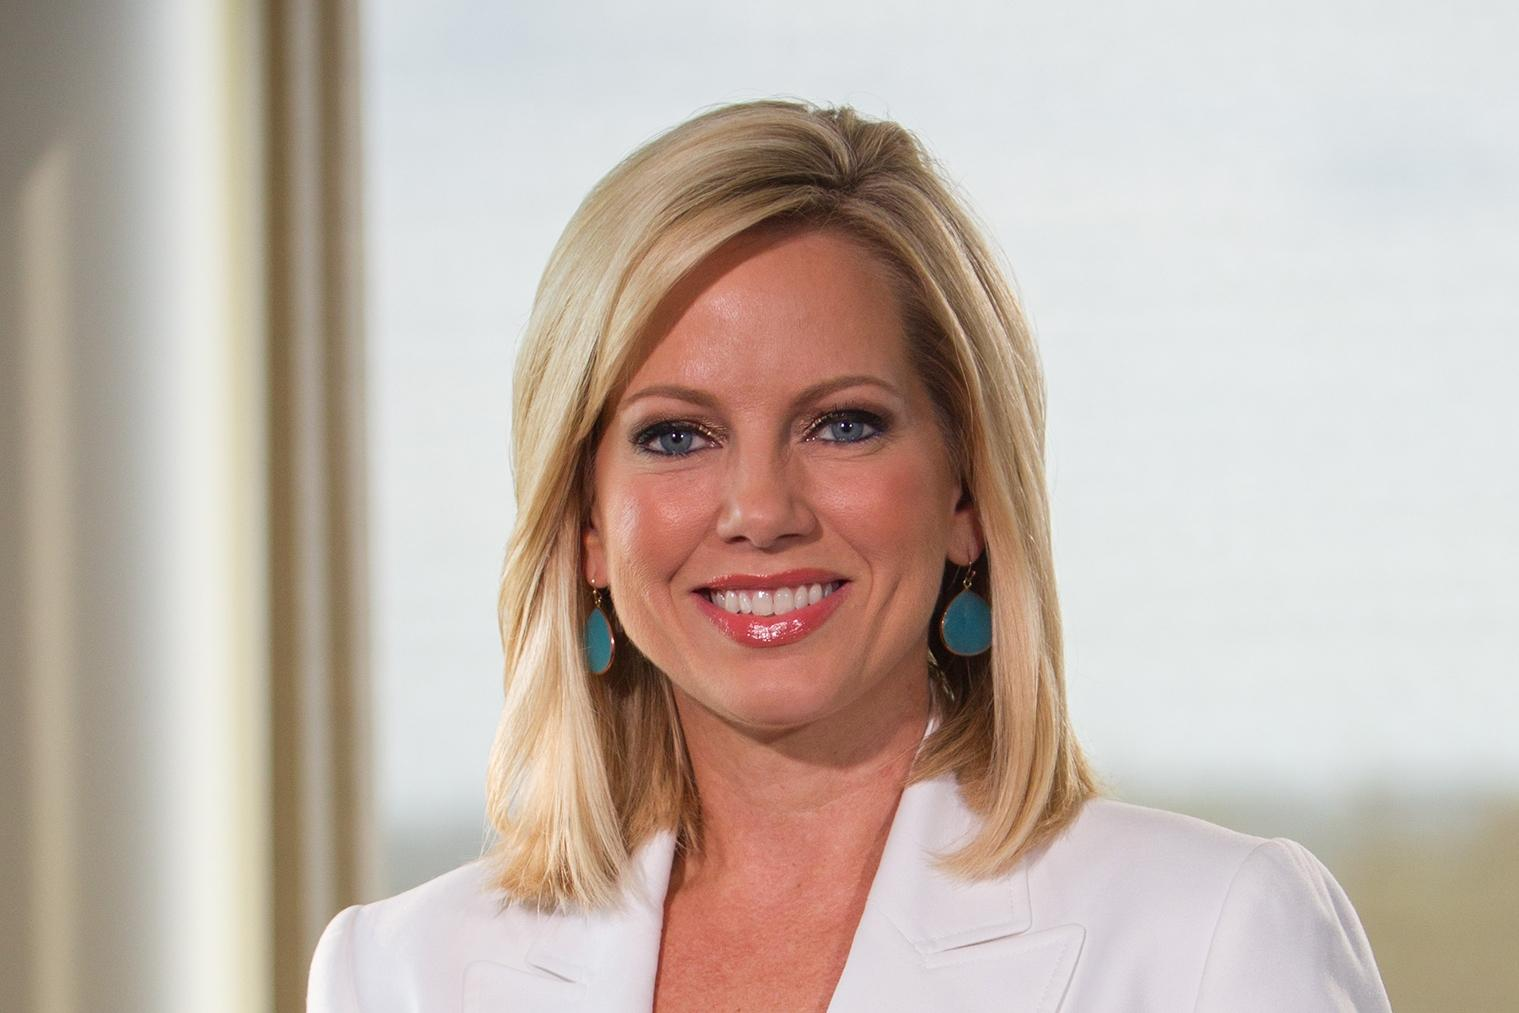 Fox News Anchor and Author Shannon Bream on Her Faith, Life, and Purpose